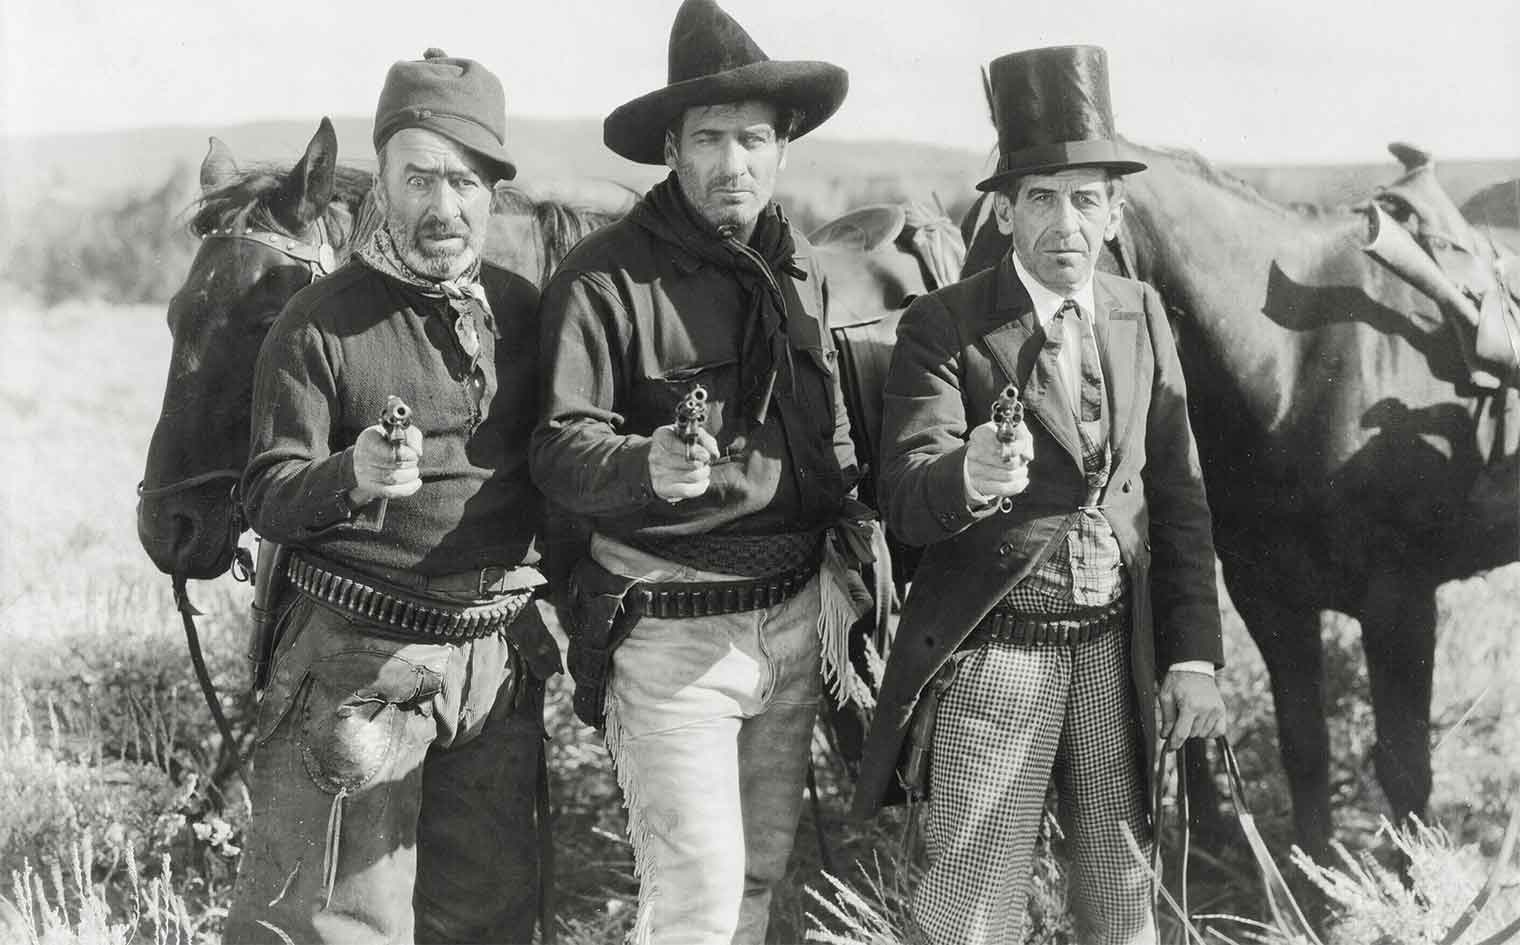 John Ford's 3 BAD MEN